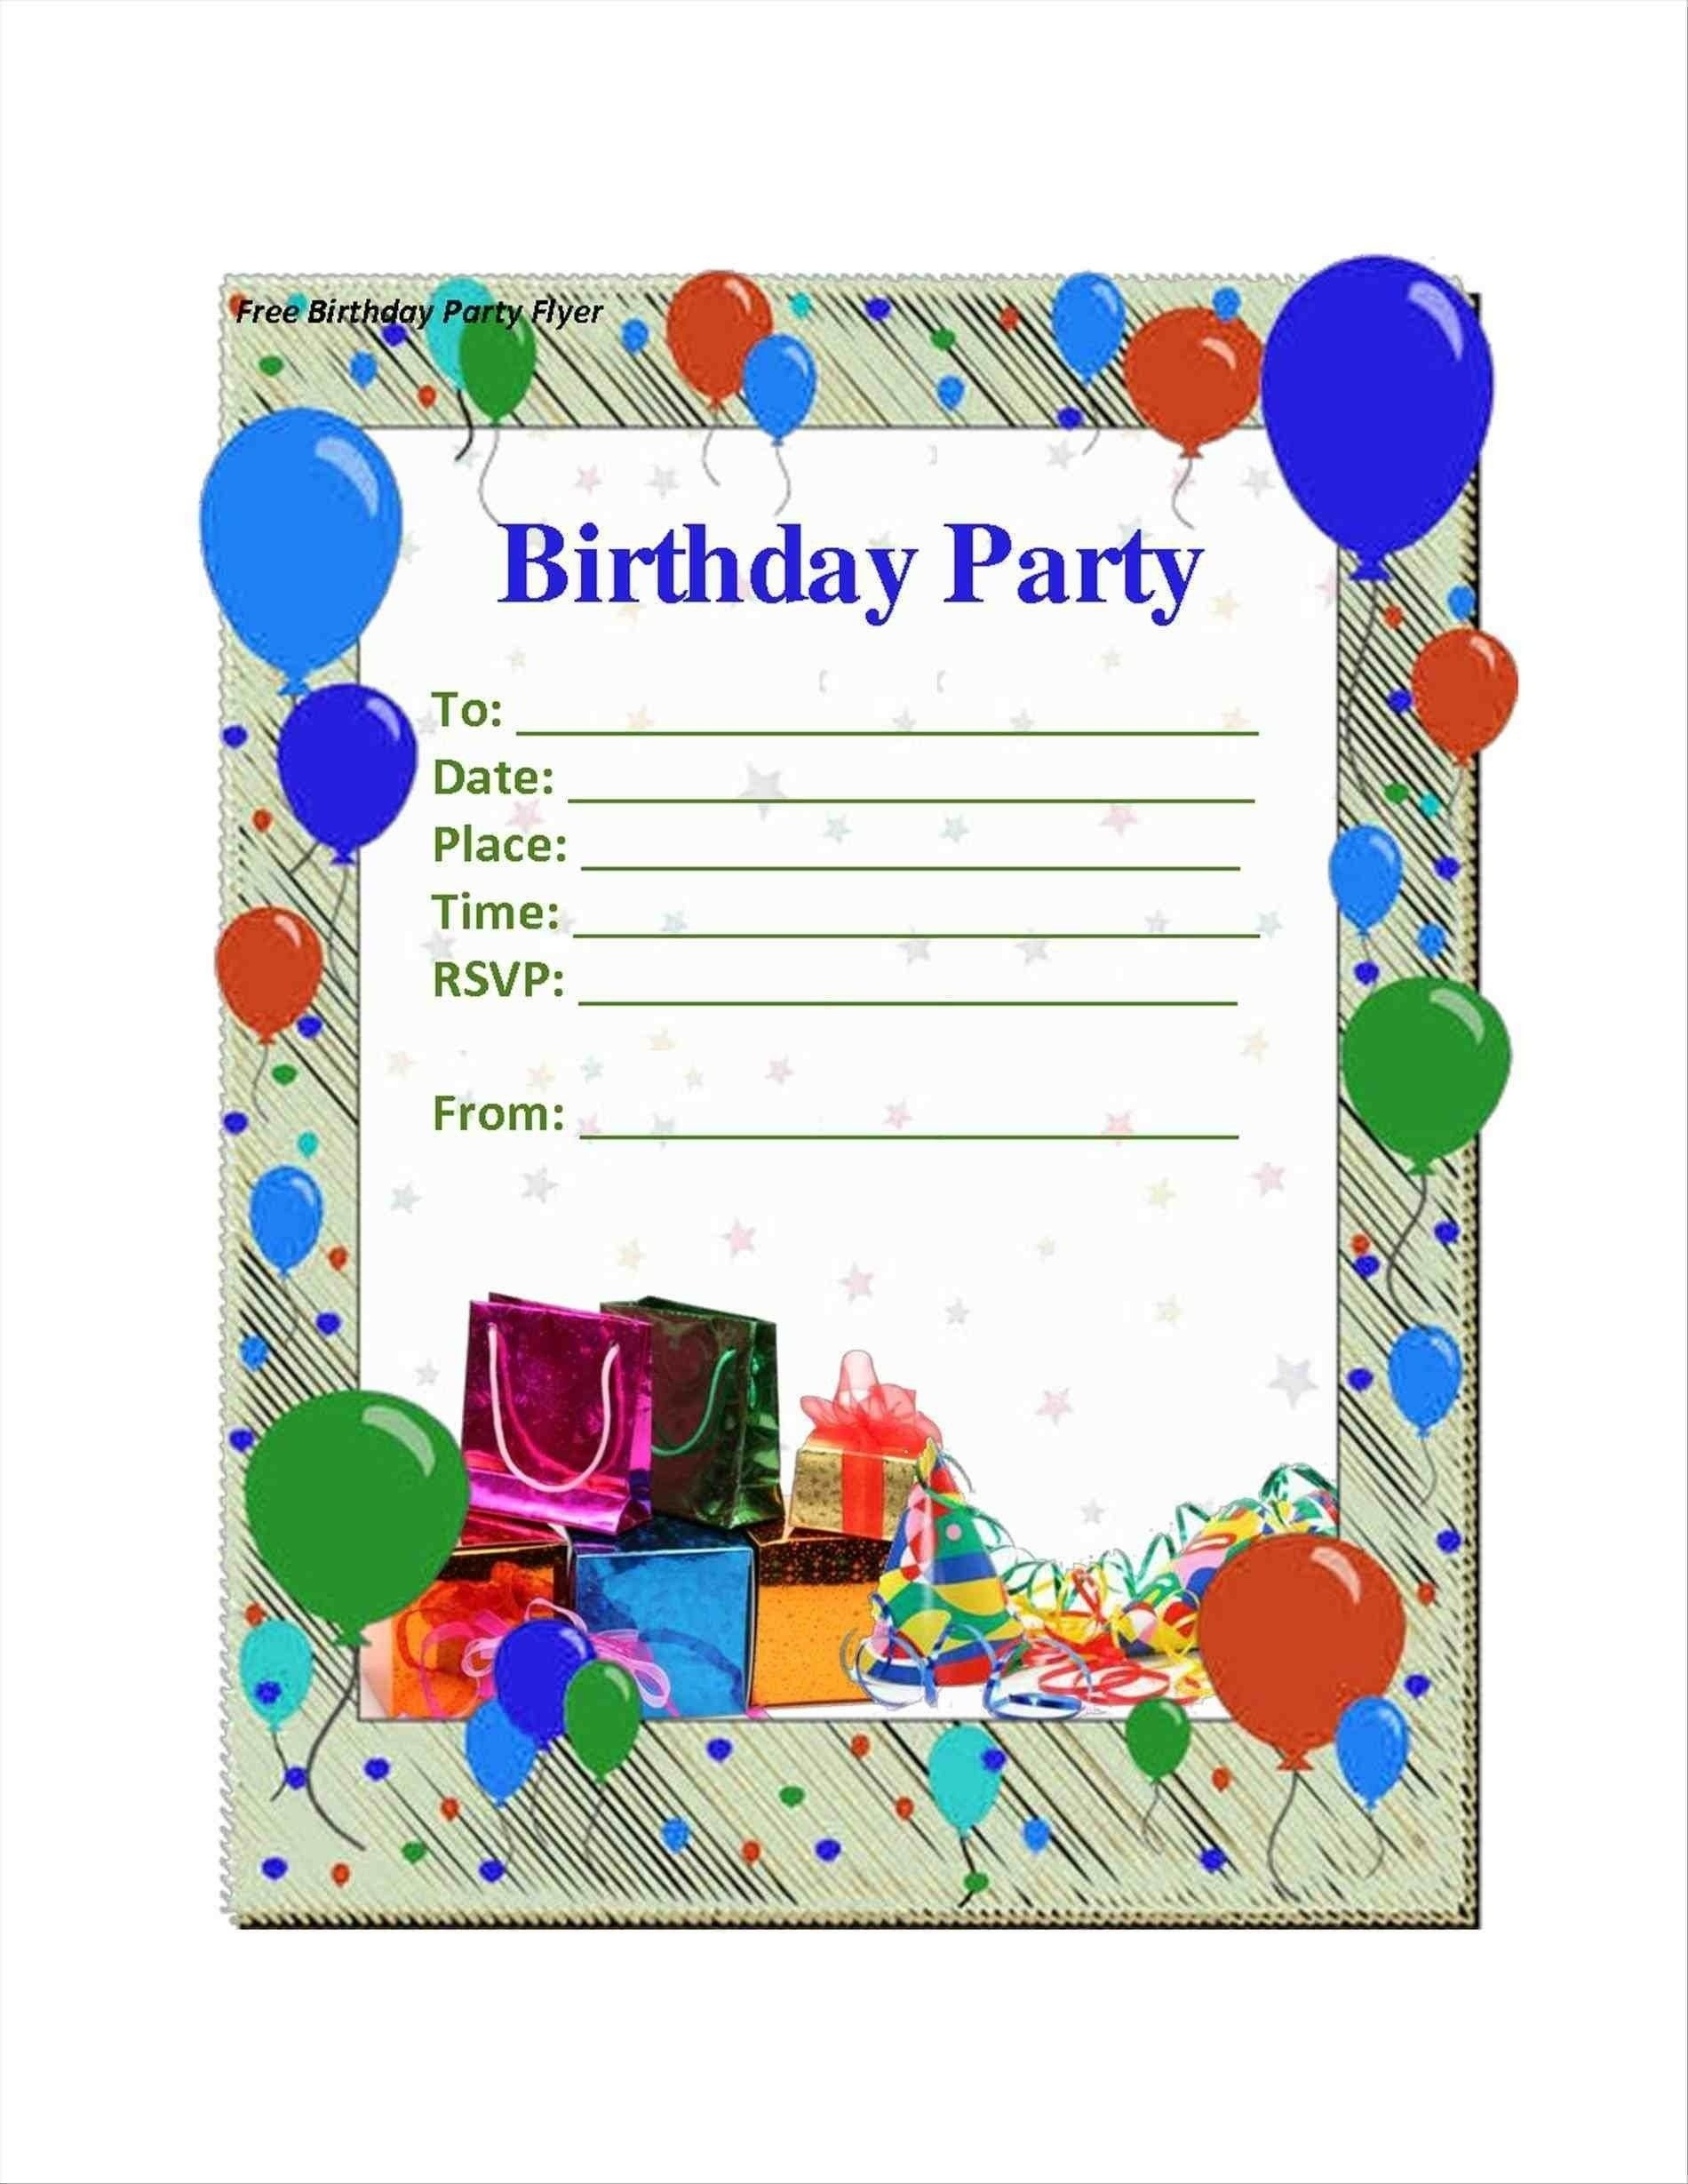 Party Invitation Ideas | Home Design In 2019 | Free Birthday - Free Printable Birthday Party Flyers